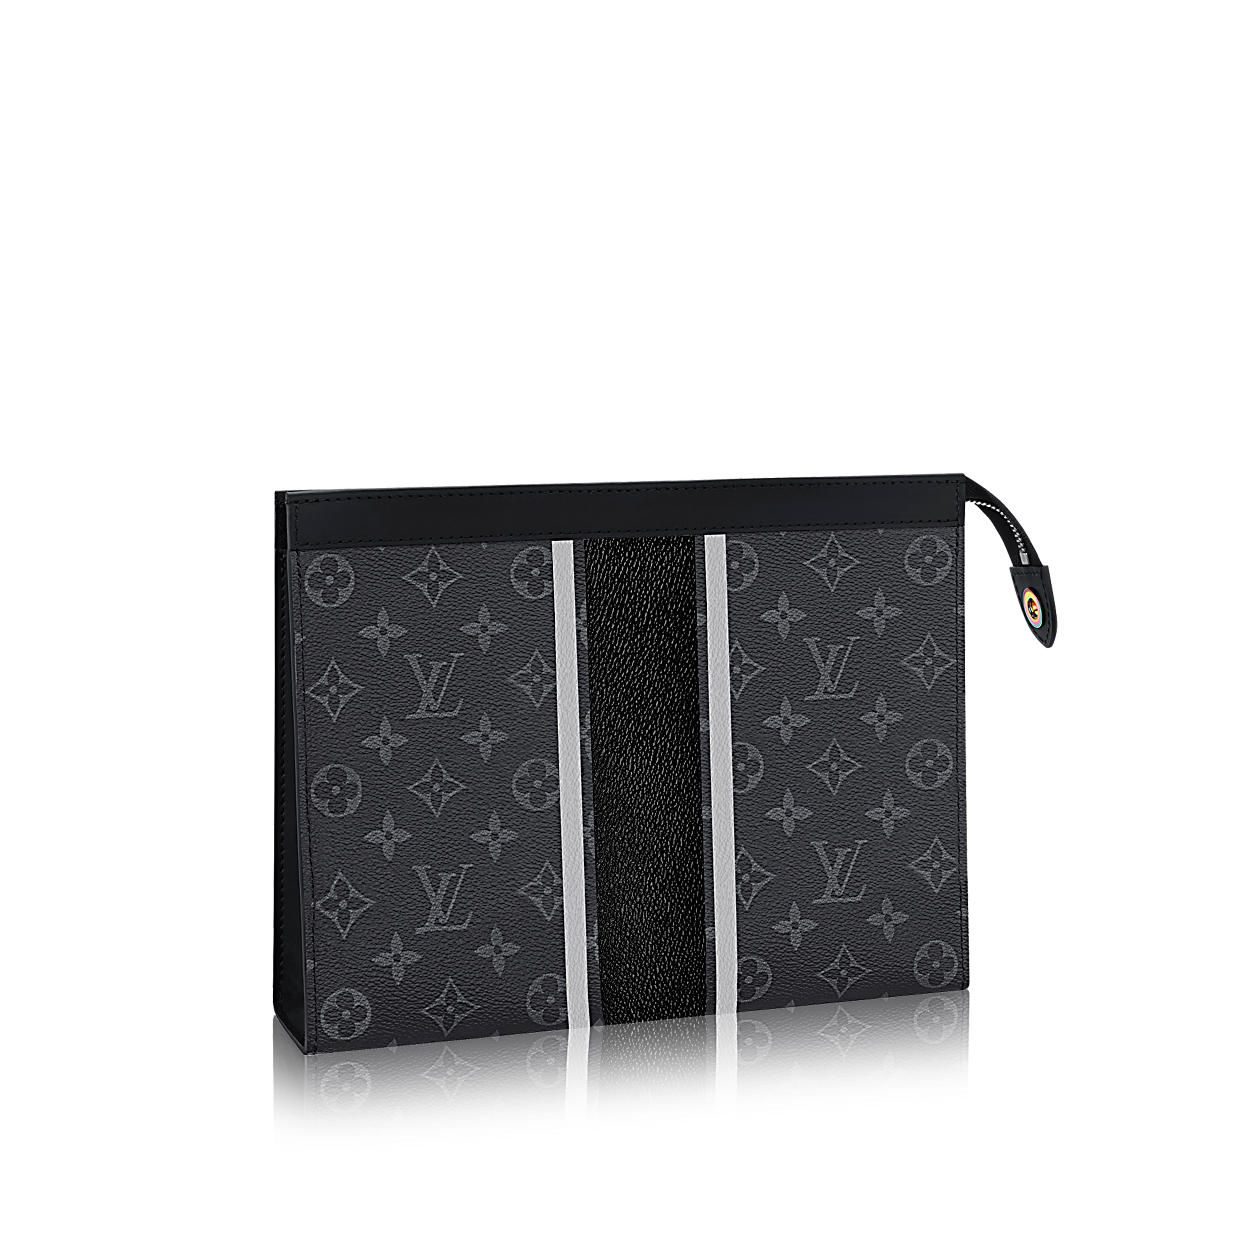 Pochette Voyage Mm Monogram Eclipse Flash Homme Voyage Louis Vuitton Louis Vuitton Louis Vitton Louis Vuitton Official Website